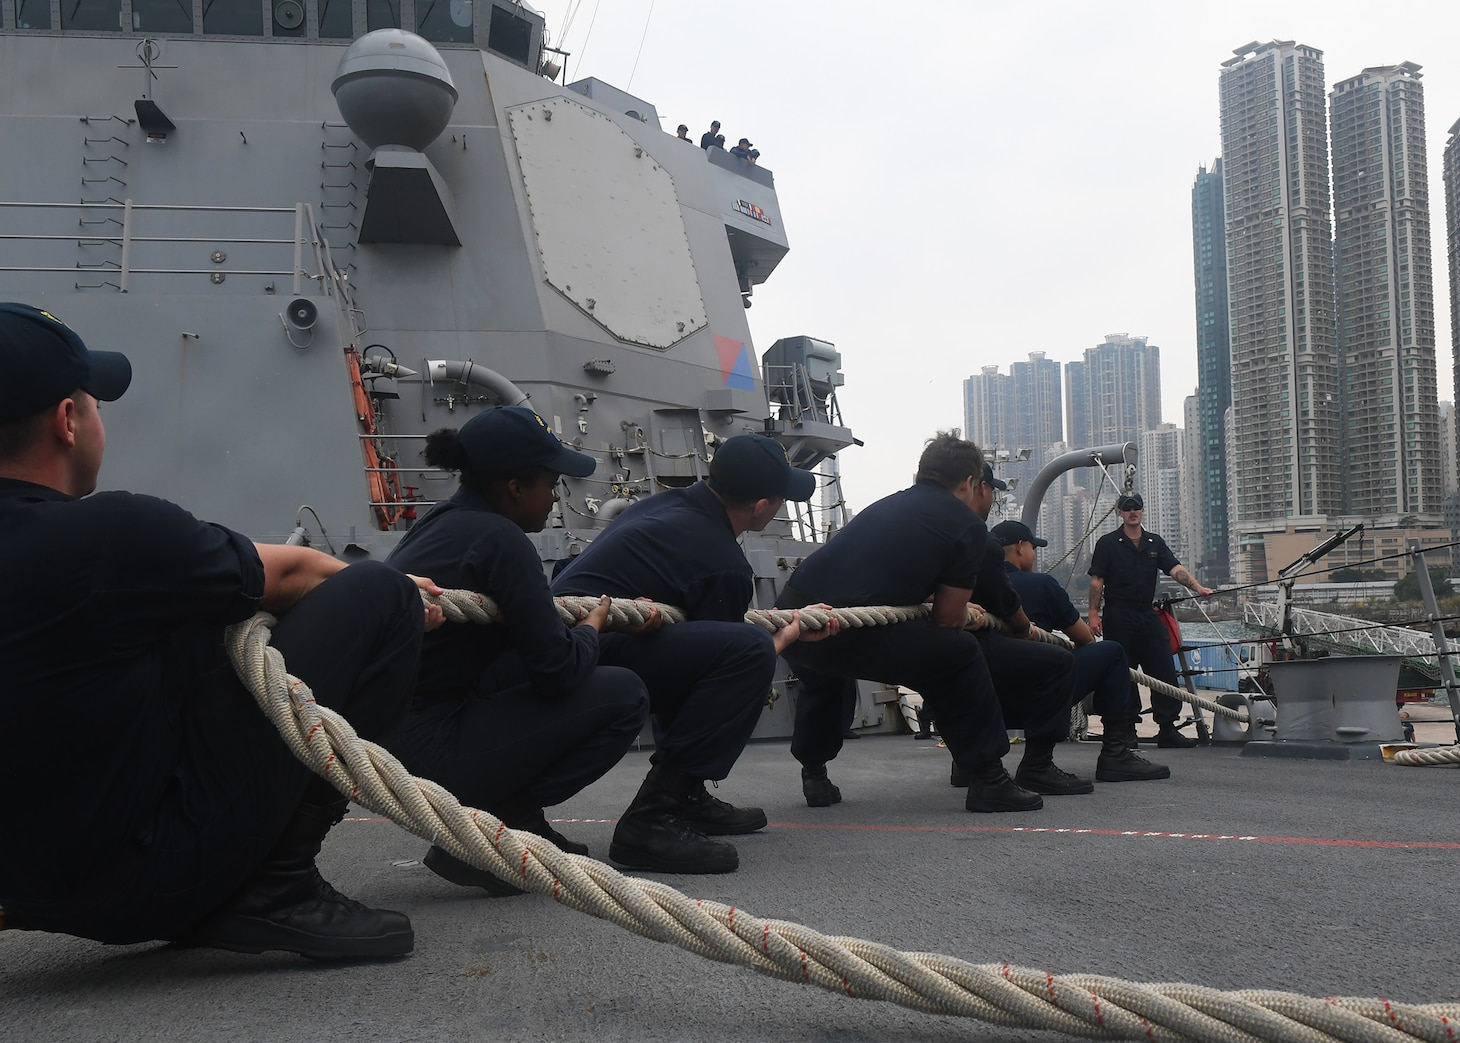 Sailors heave a line aboard the Arleigh Burke-class guided-missile destroyer USS Sterett (DDG 104) as part of a scheduled port visit. Sterett is in Hong Kong to experience the city's rich culture and history as the guided-missile destroyer continues its deployment with the Wasp Expeditionary Strike Group as a multi-mission asset in the Indo-Pacific region.